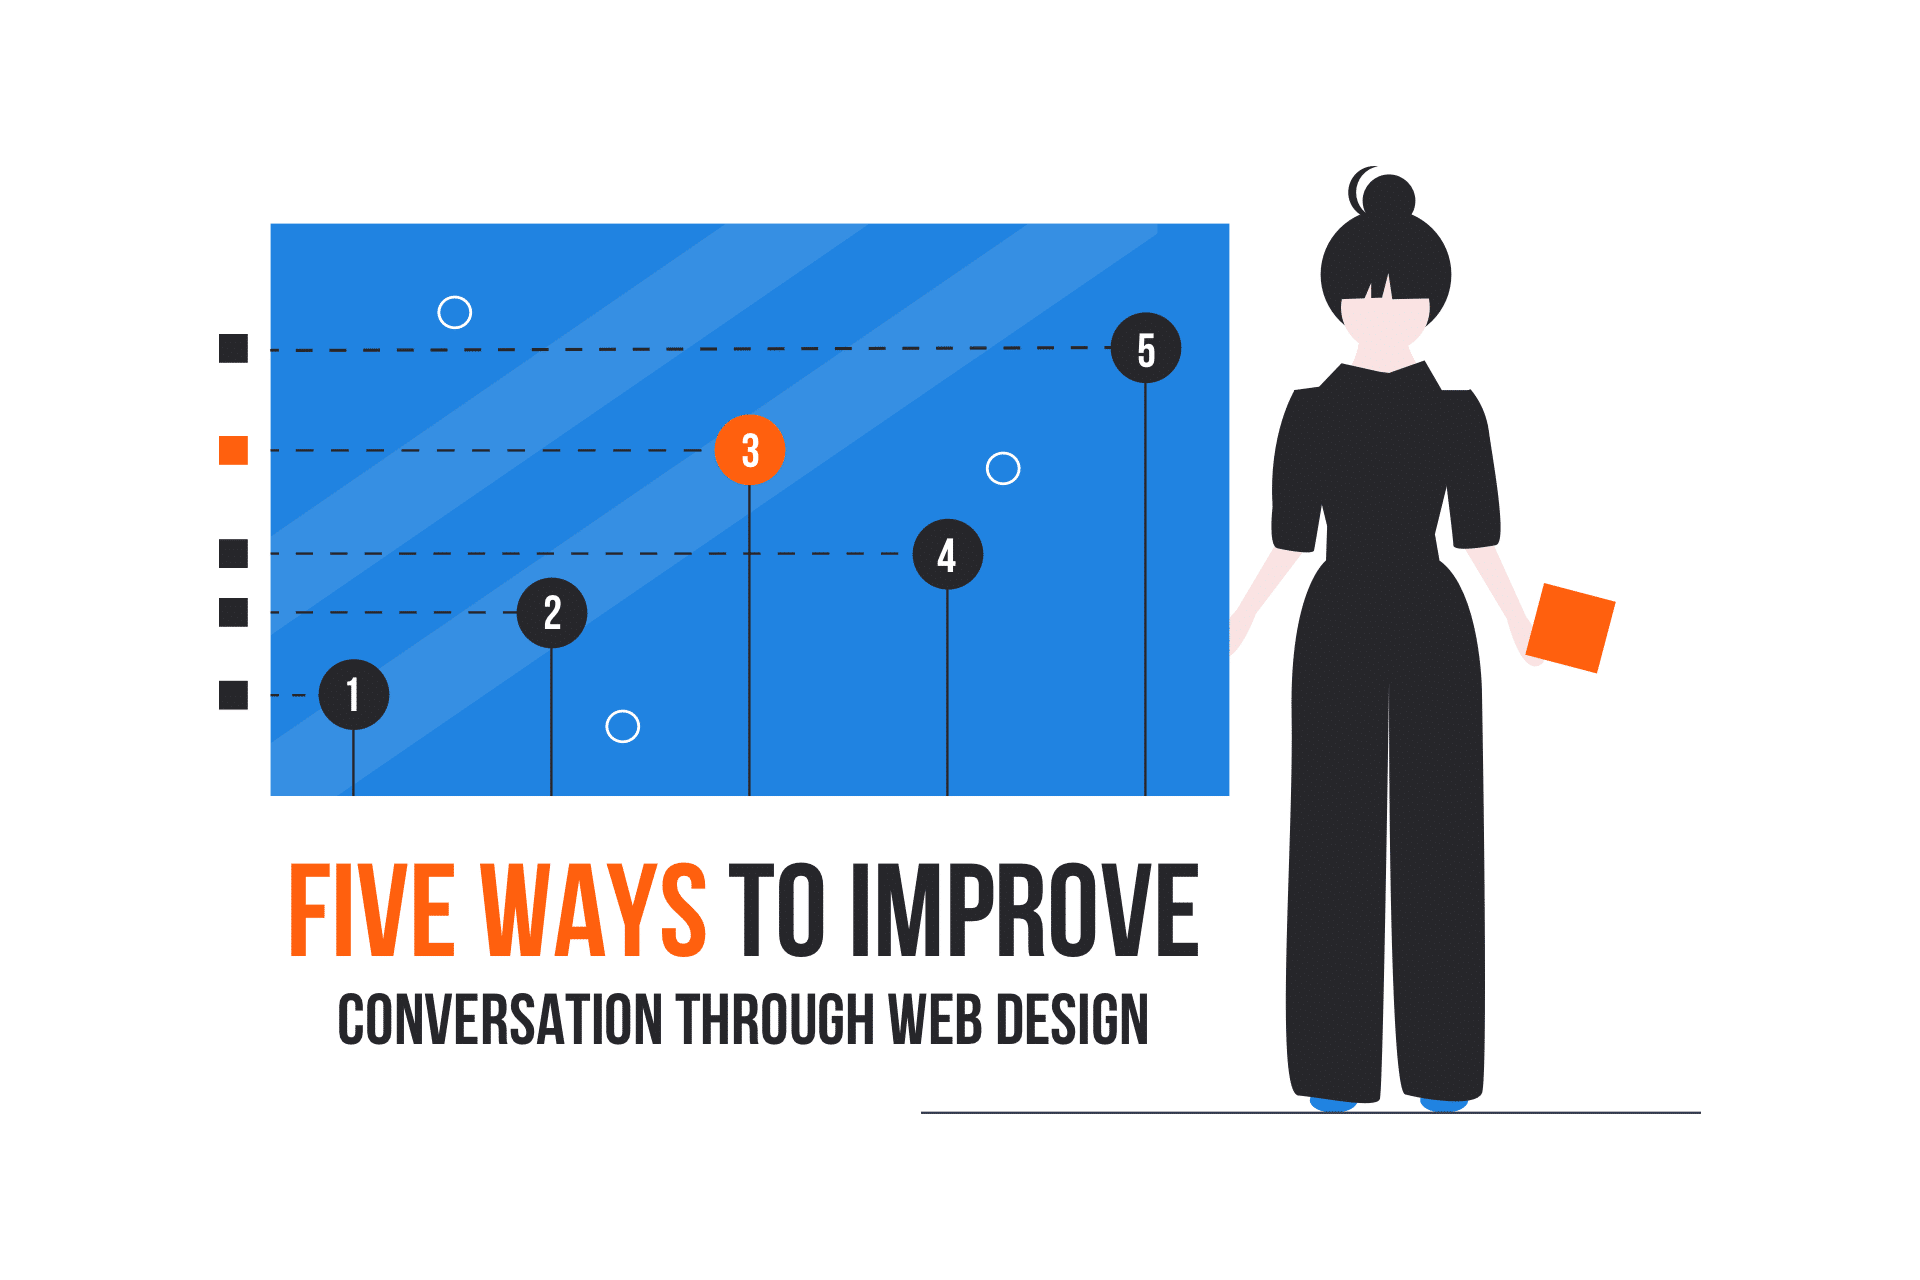 Five Ways to Improve Conversion Through Web Design